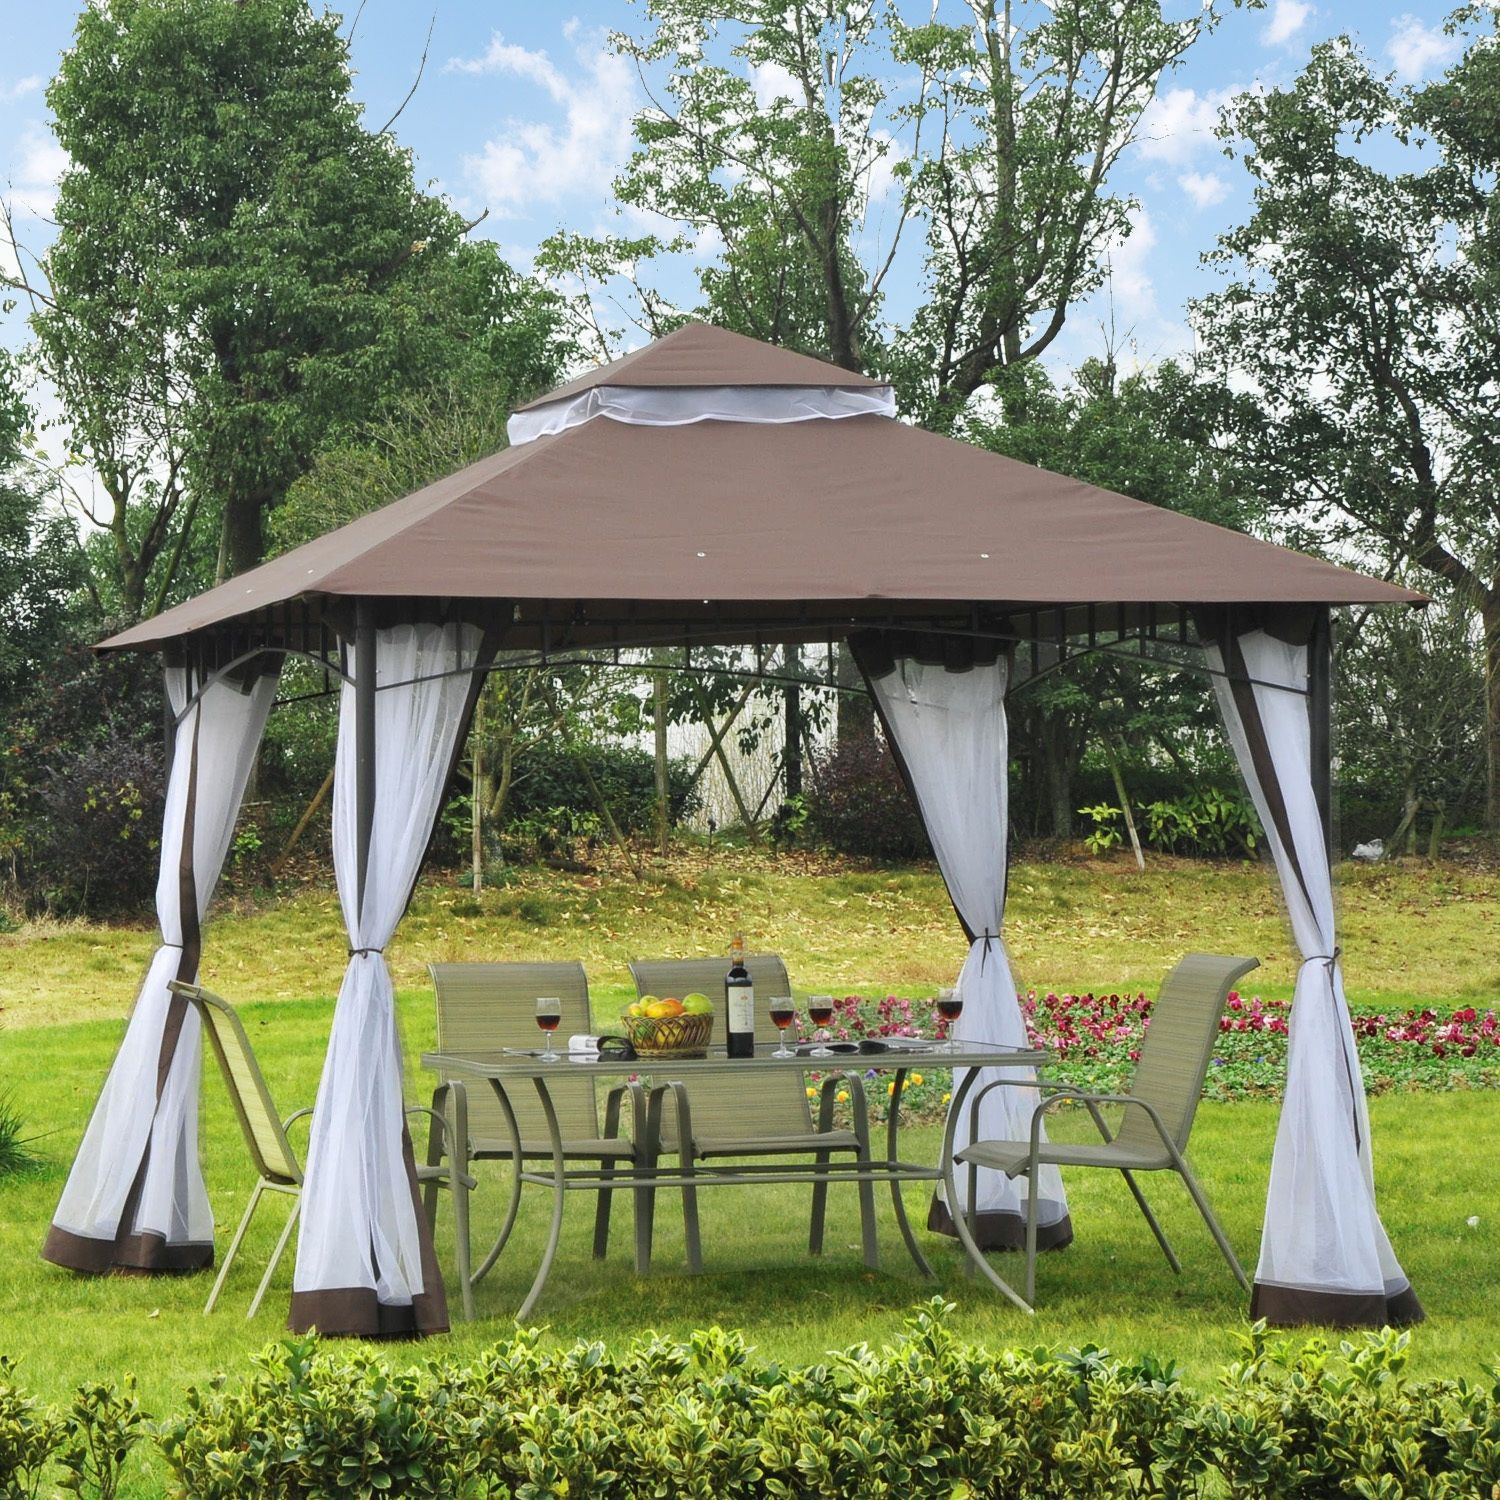 Zip Frame Gazebo Asda